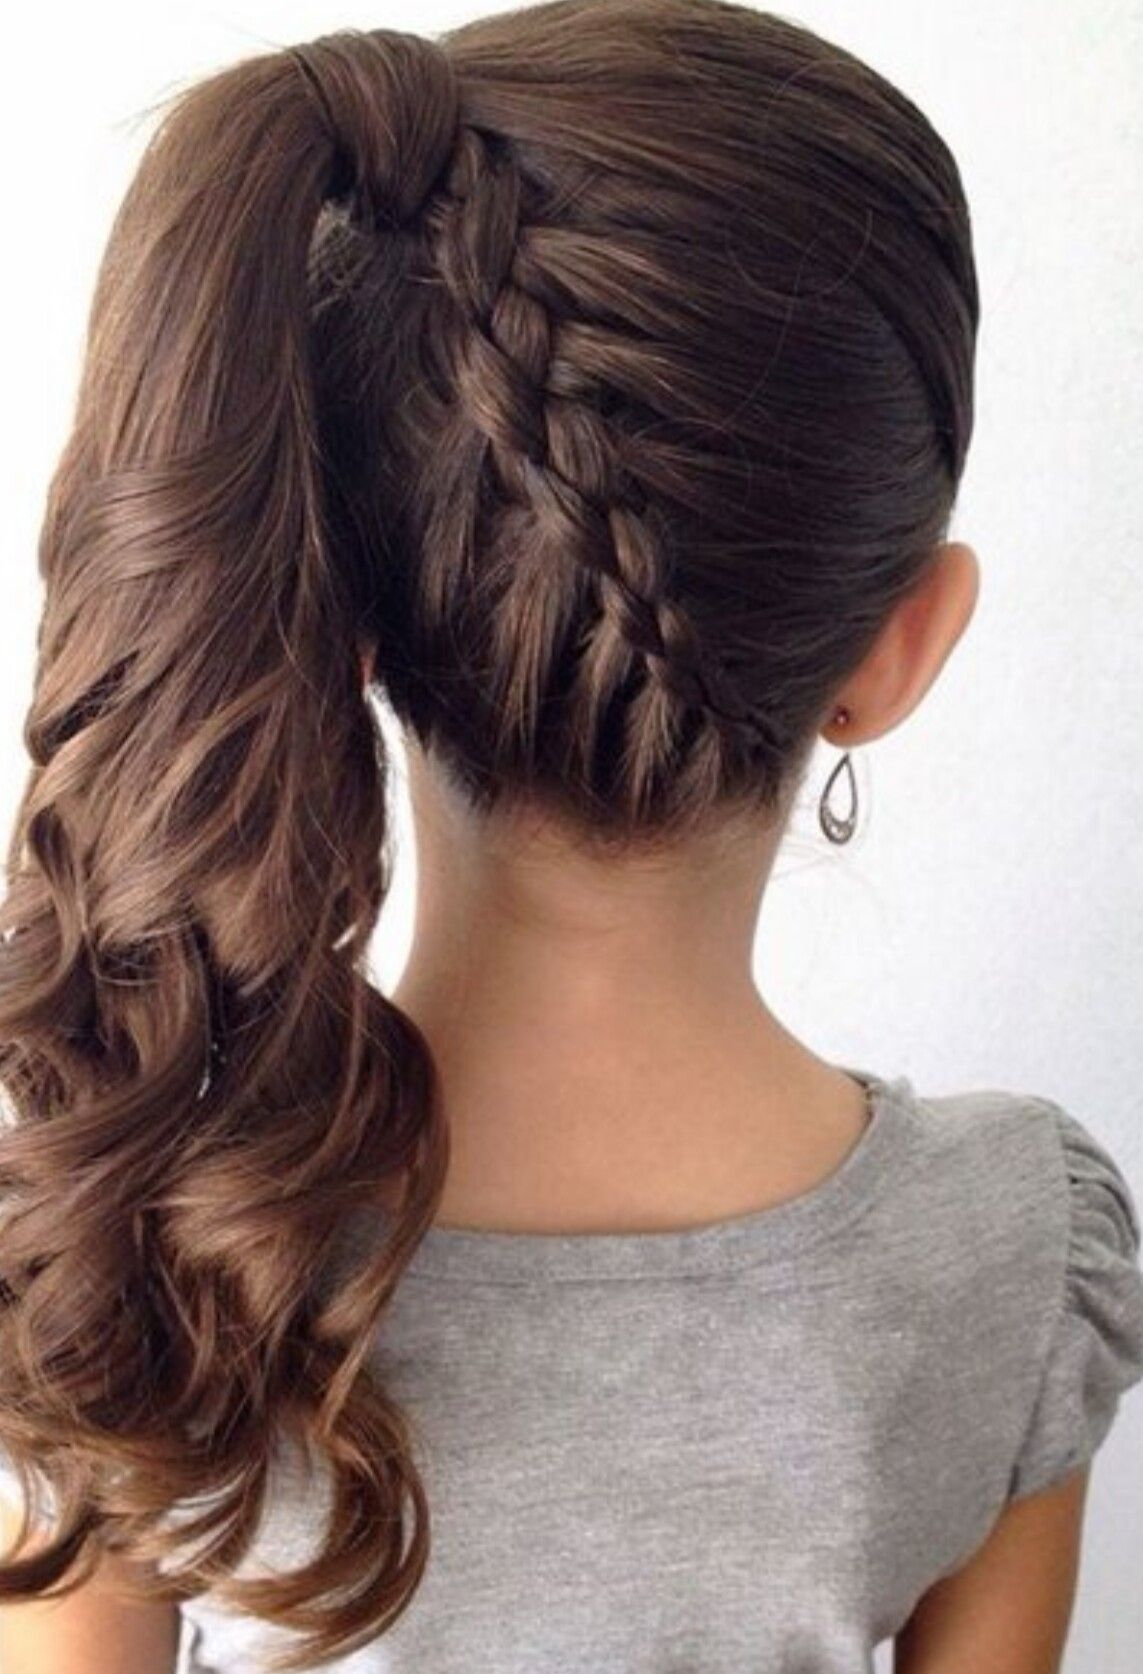 fancy little girl braids hairstyle girl hairstyles braid